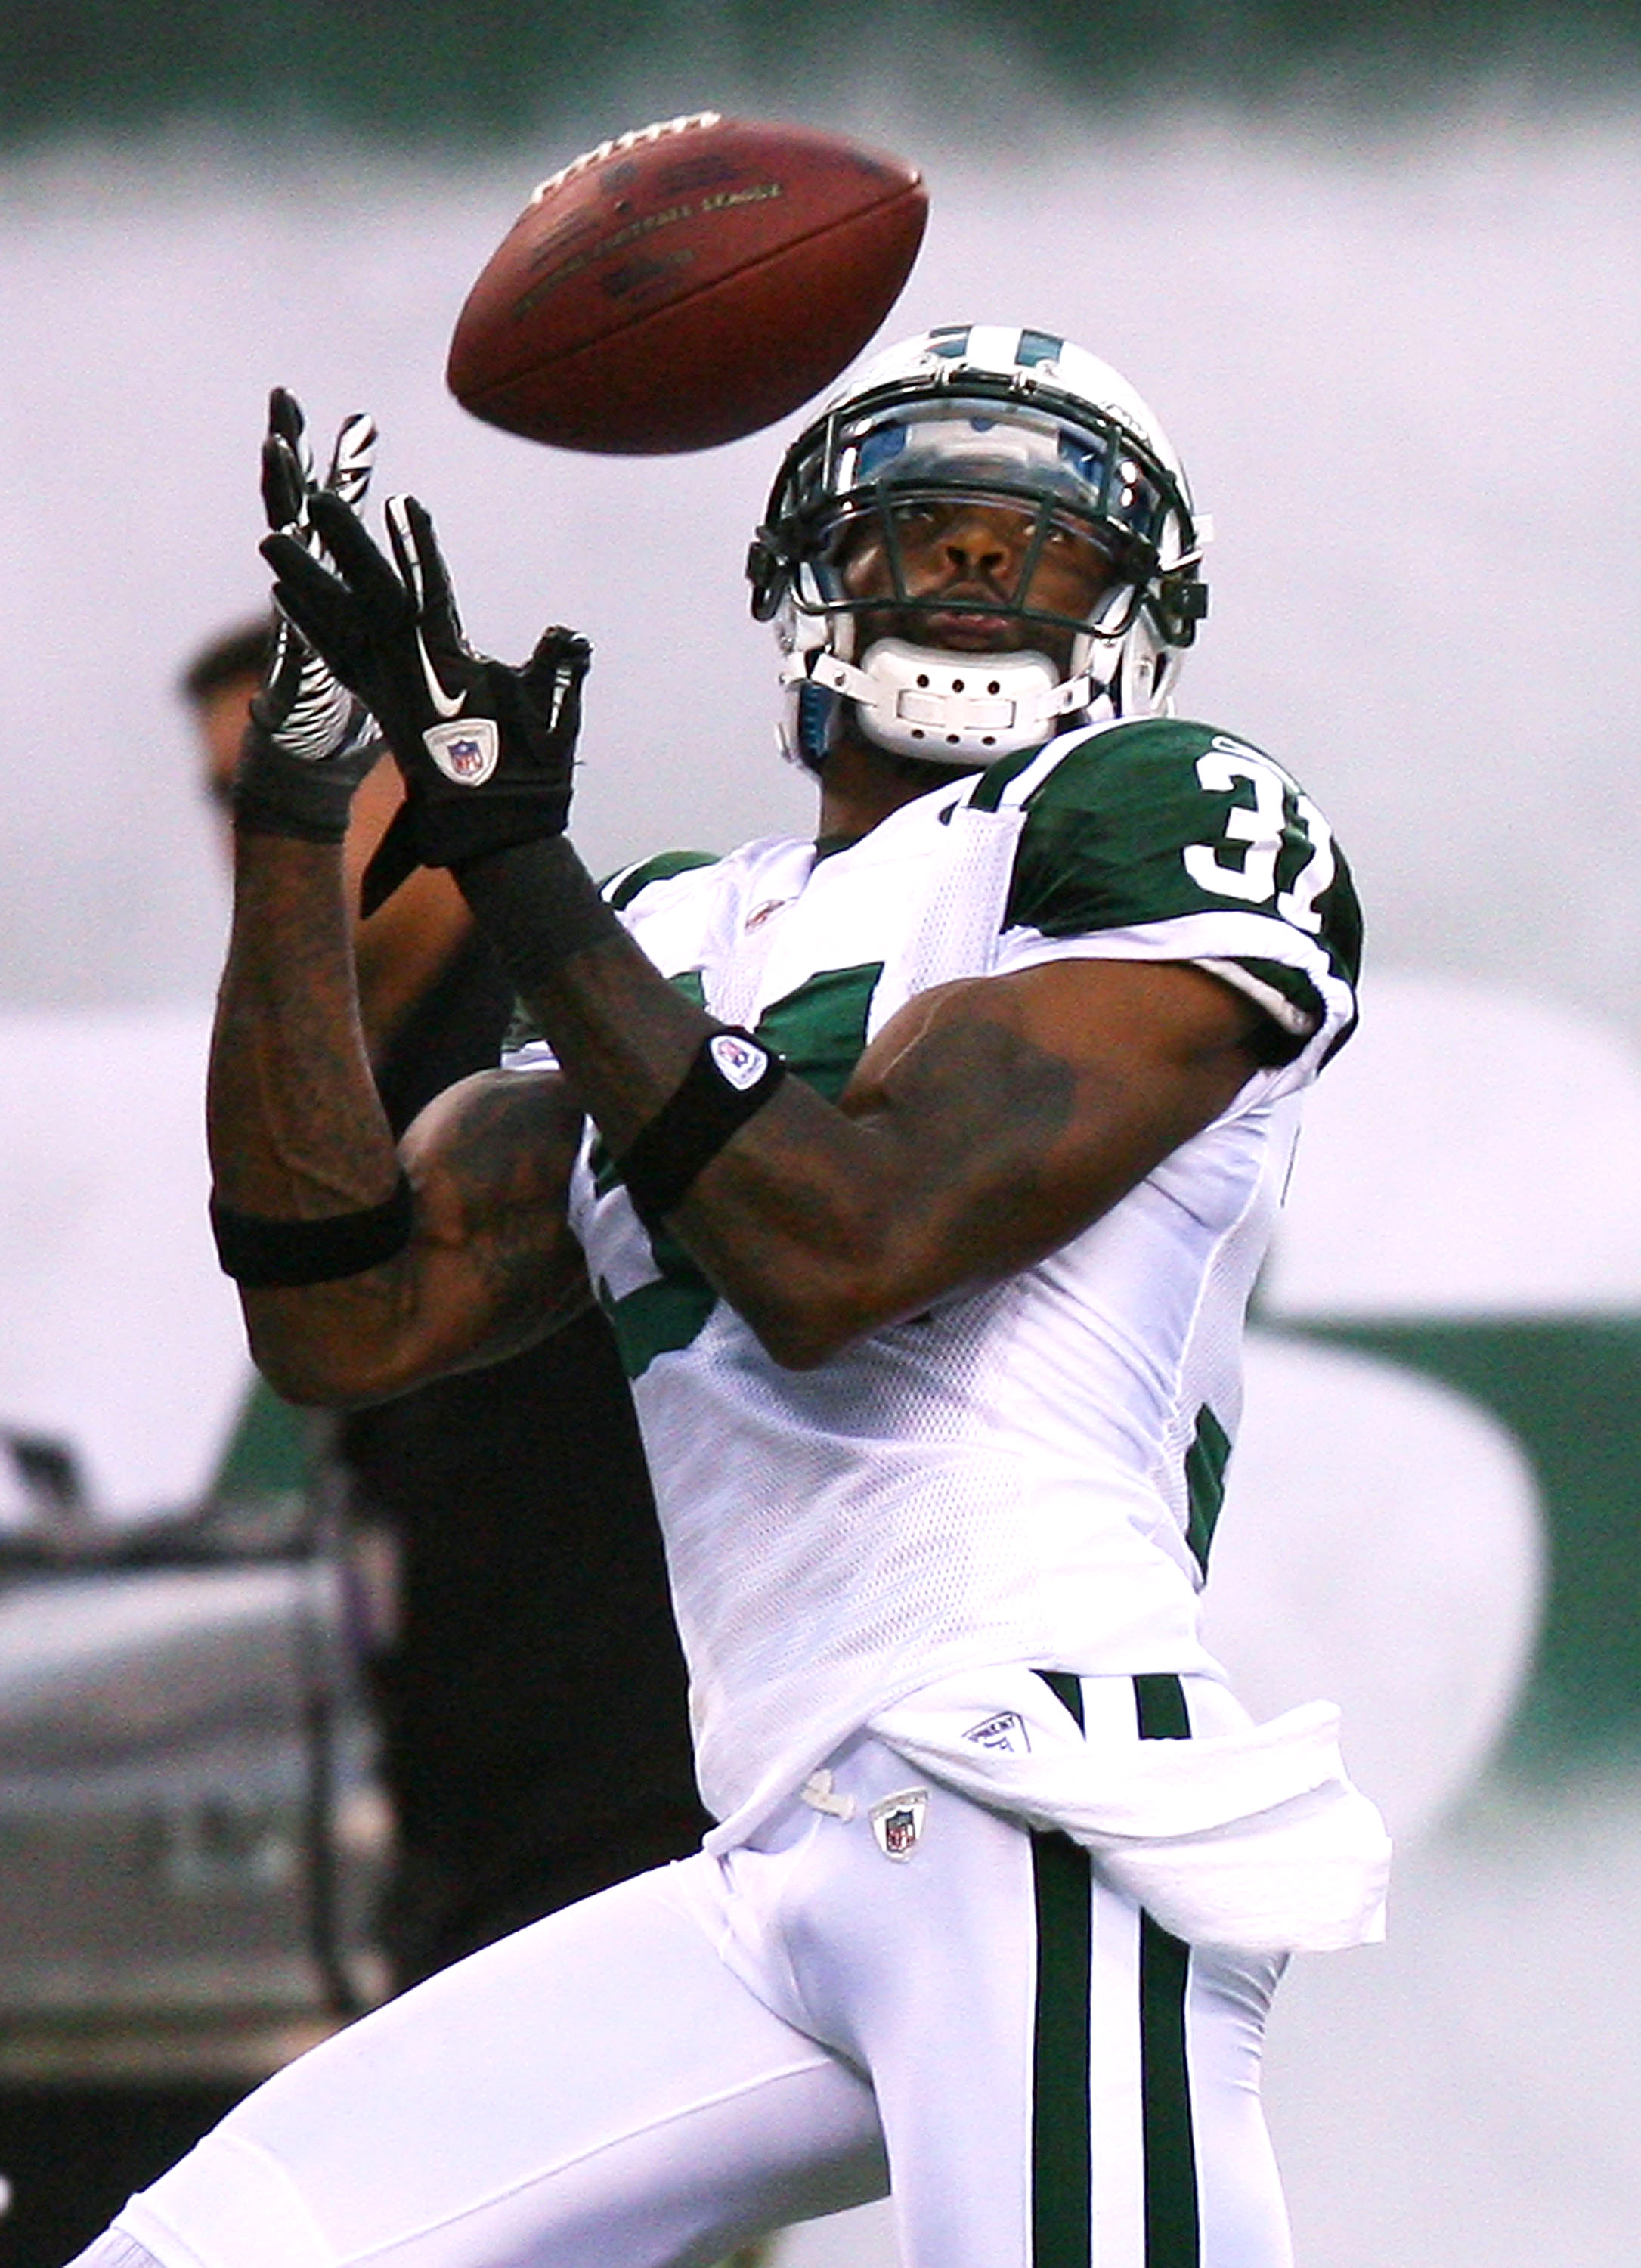 EAST RUTHERFORD, NJ - SEPTEMBER 19:  Antonio Cromartie #31 of the New York Jets intercepts a pass from Tom Brady of the New England Patriots intended for Randy Moss at the New Meadowlands Stadium on September 19, 2010 in East Rutherford, New Jersey.  (Pho